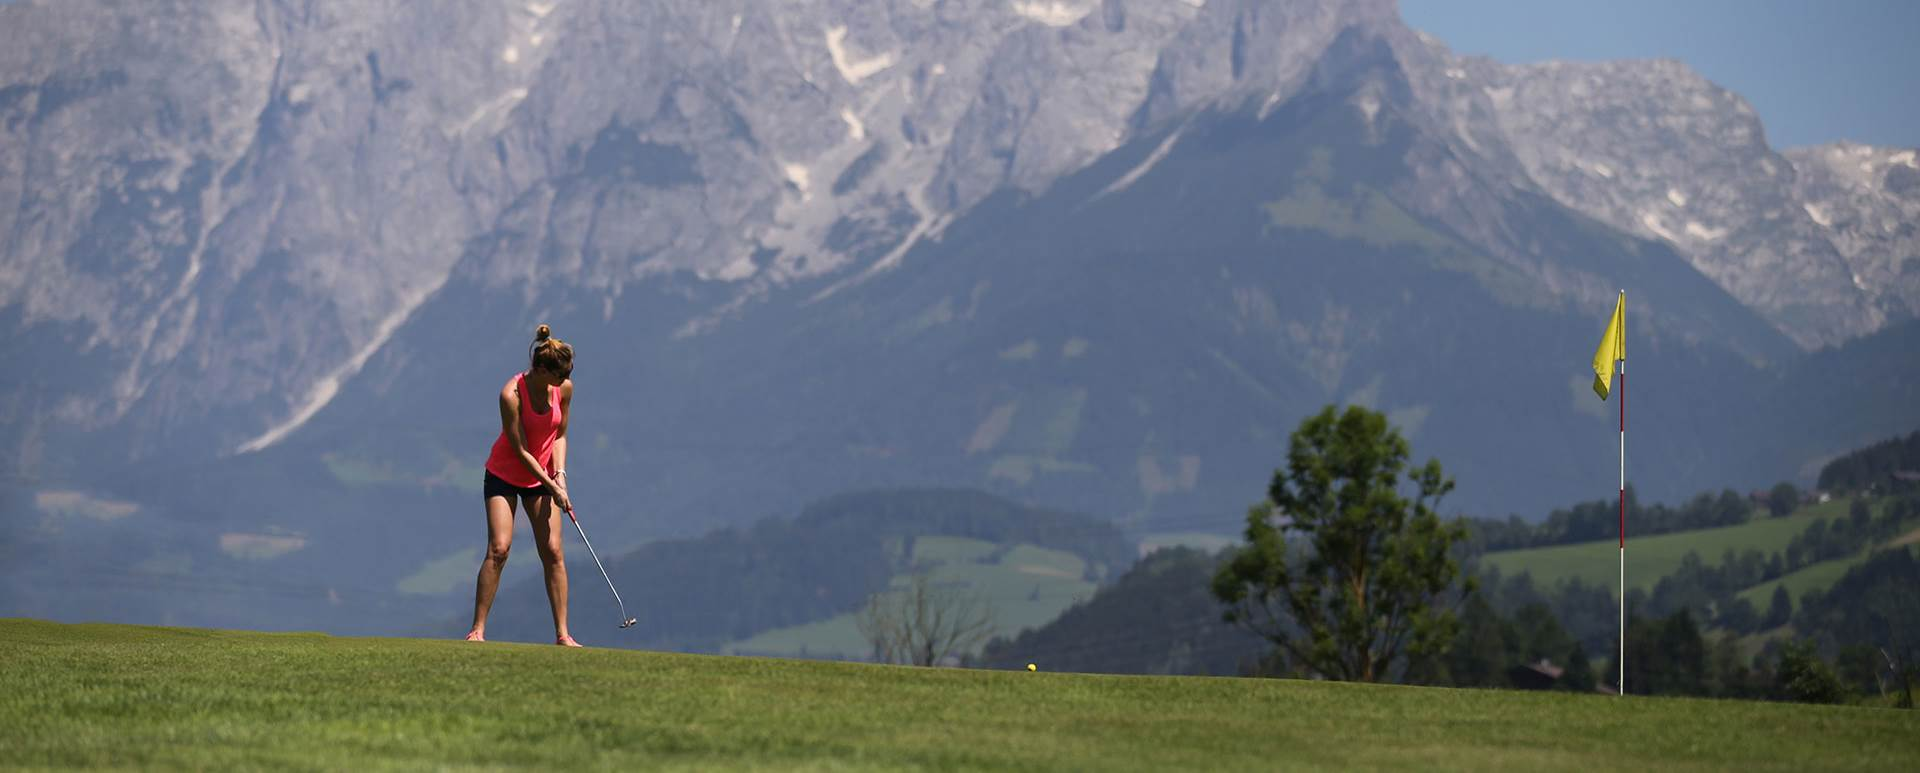 Woman plays golf with mountain panorama